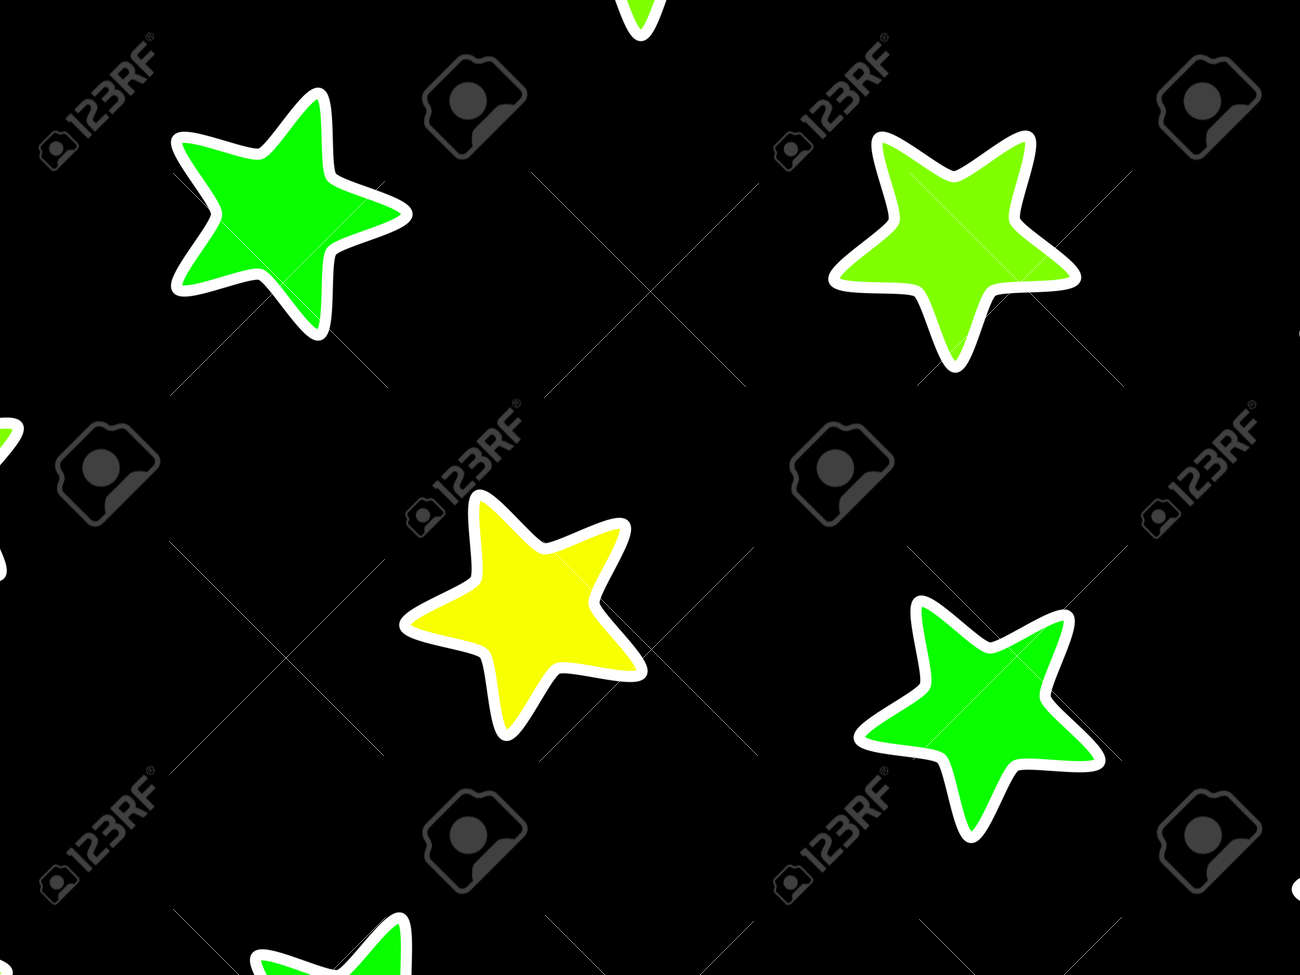 Abstract Pattern Containing Random Shapes For High Definition